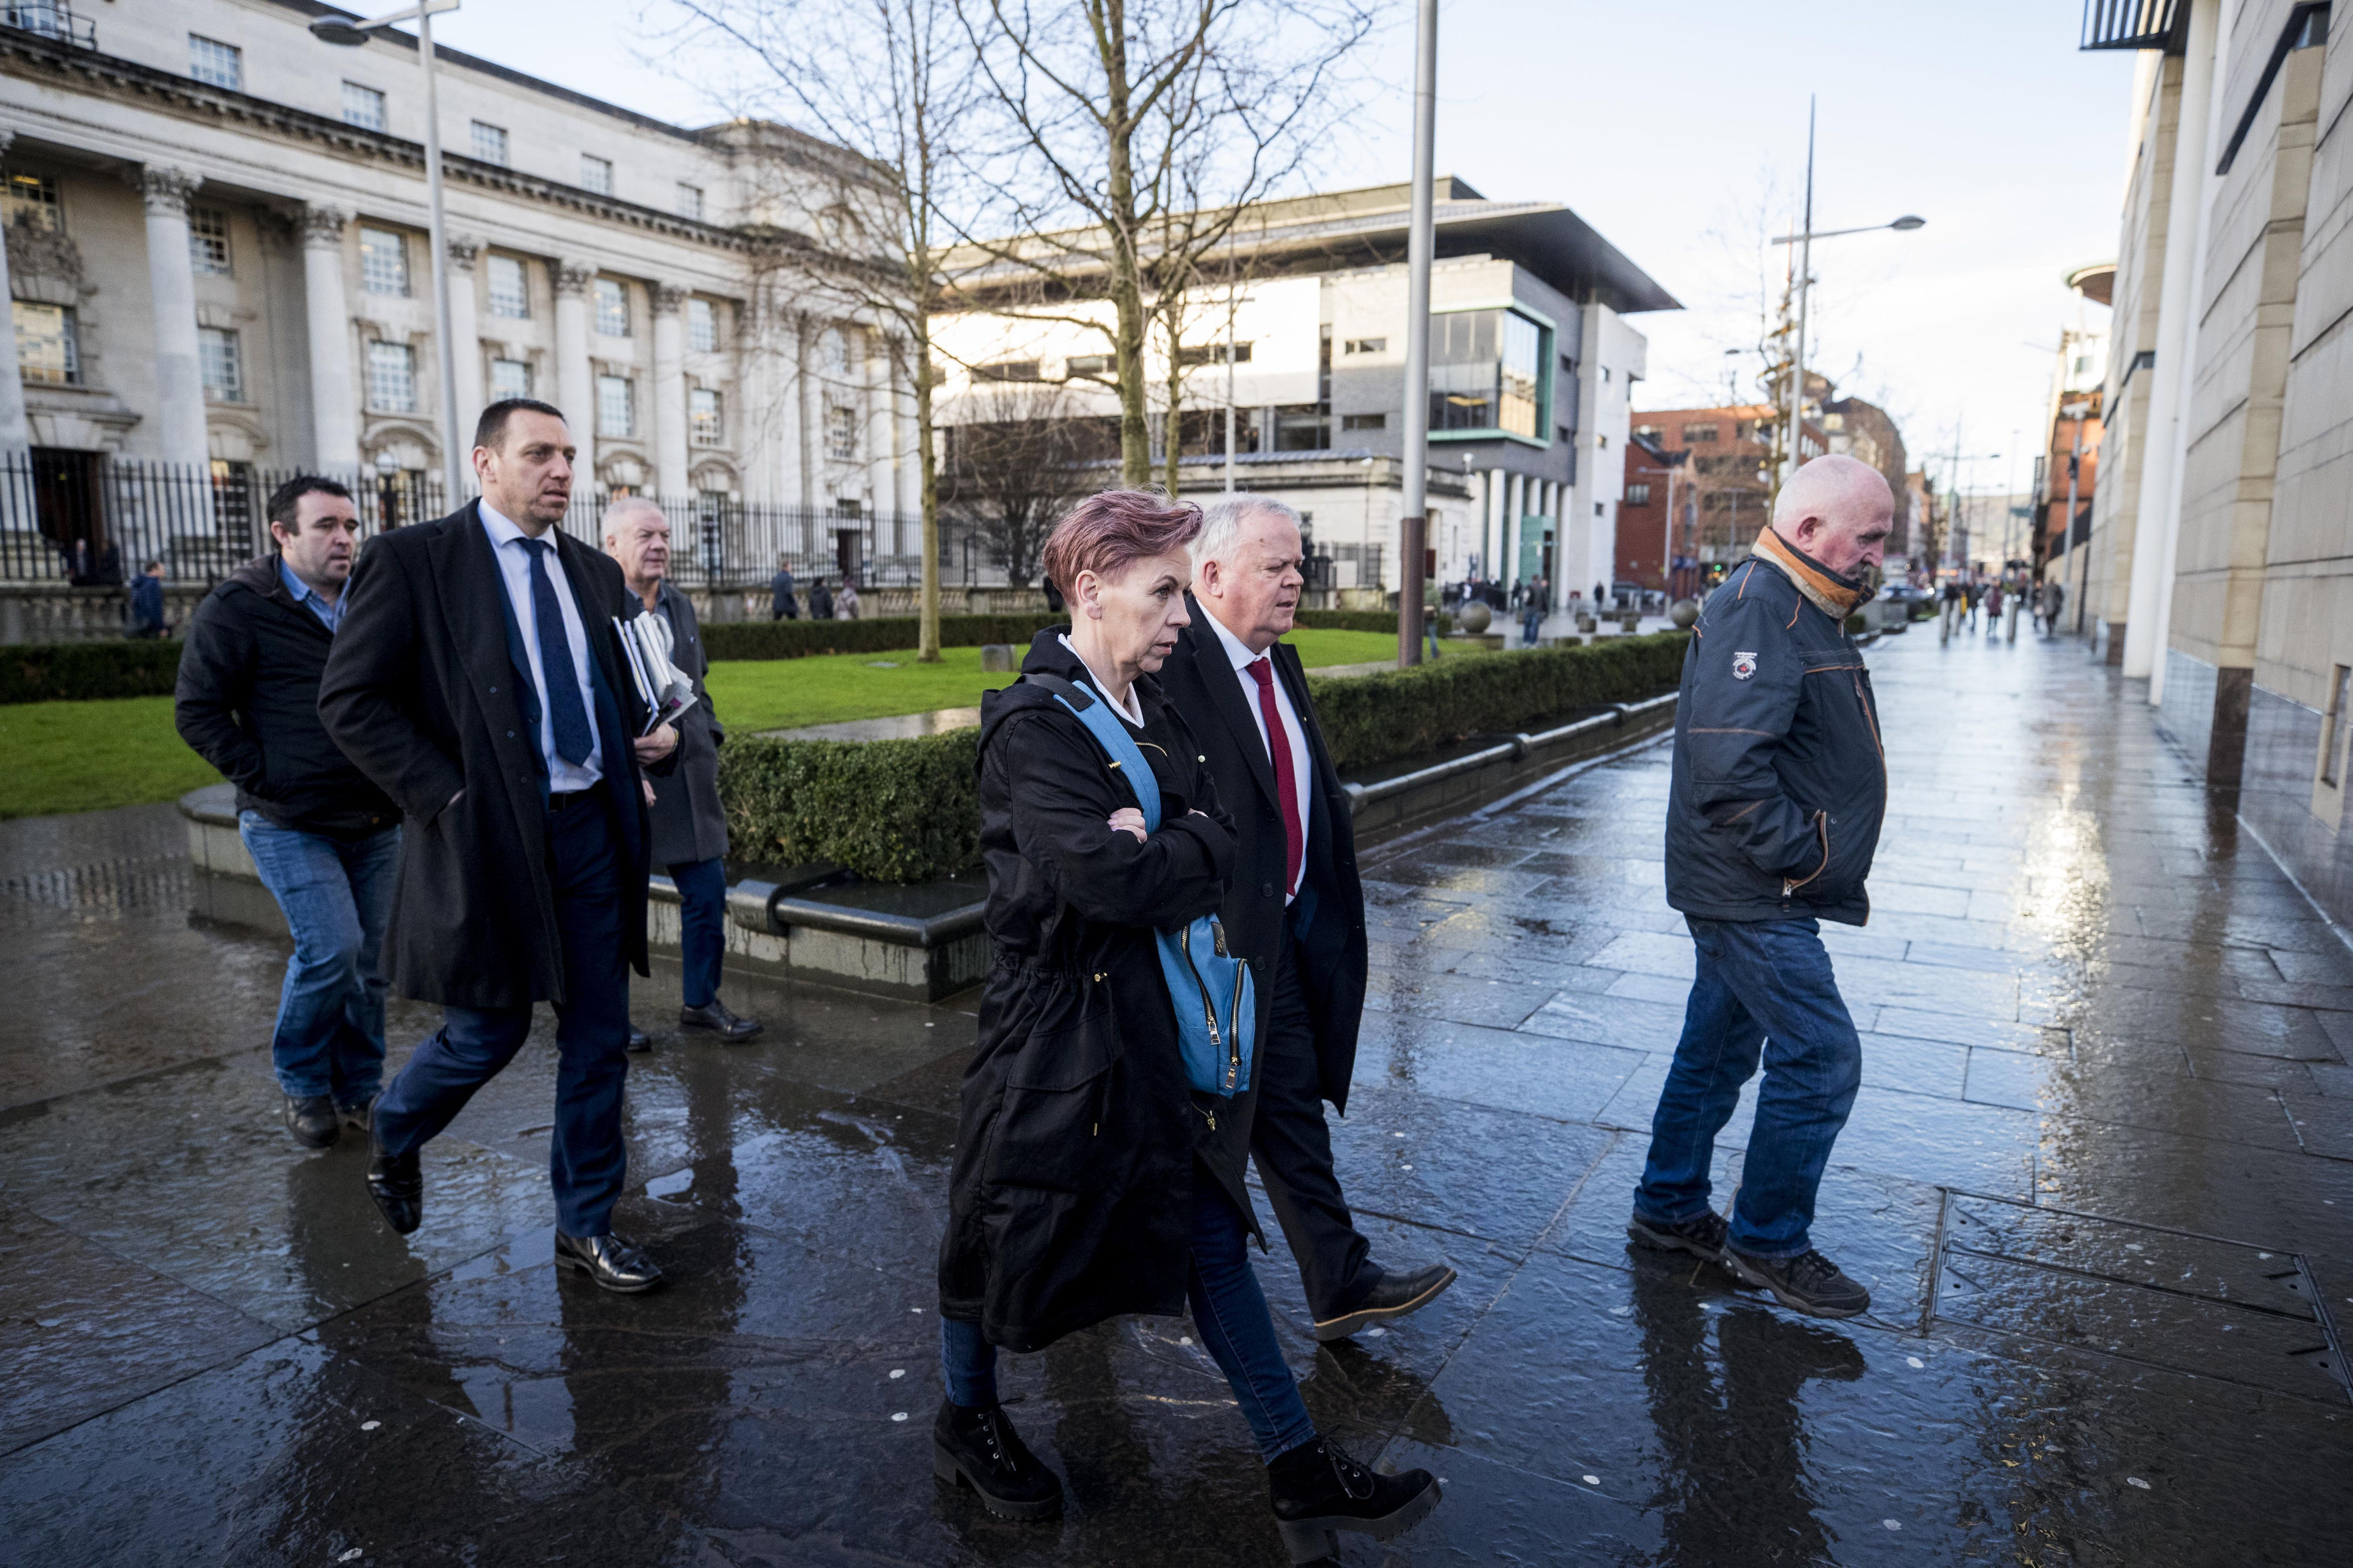 Keiran Fox (son of Eamon Fox, left), solicitor Padraig O'Muirigh (2nd left) Raymond McCord Snr (father of Raymond McCord Jnr 3rd left), SDLP MLA John Dallat (2nd right) and Joe Convie (father of Gary Convie, right) arriving at Laganside courts in Belfas